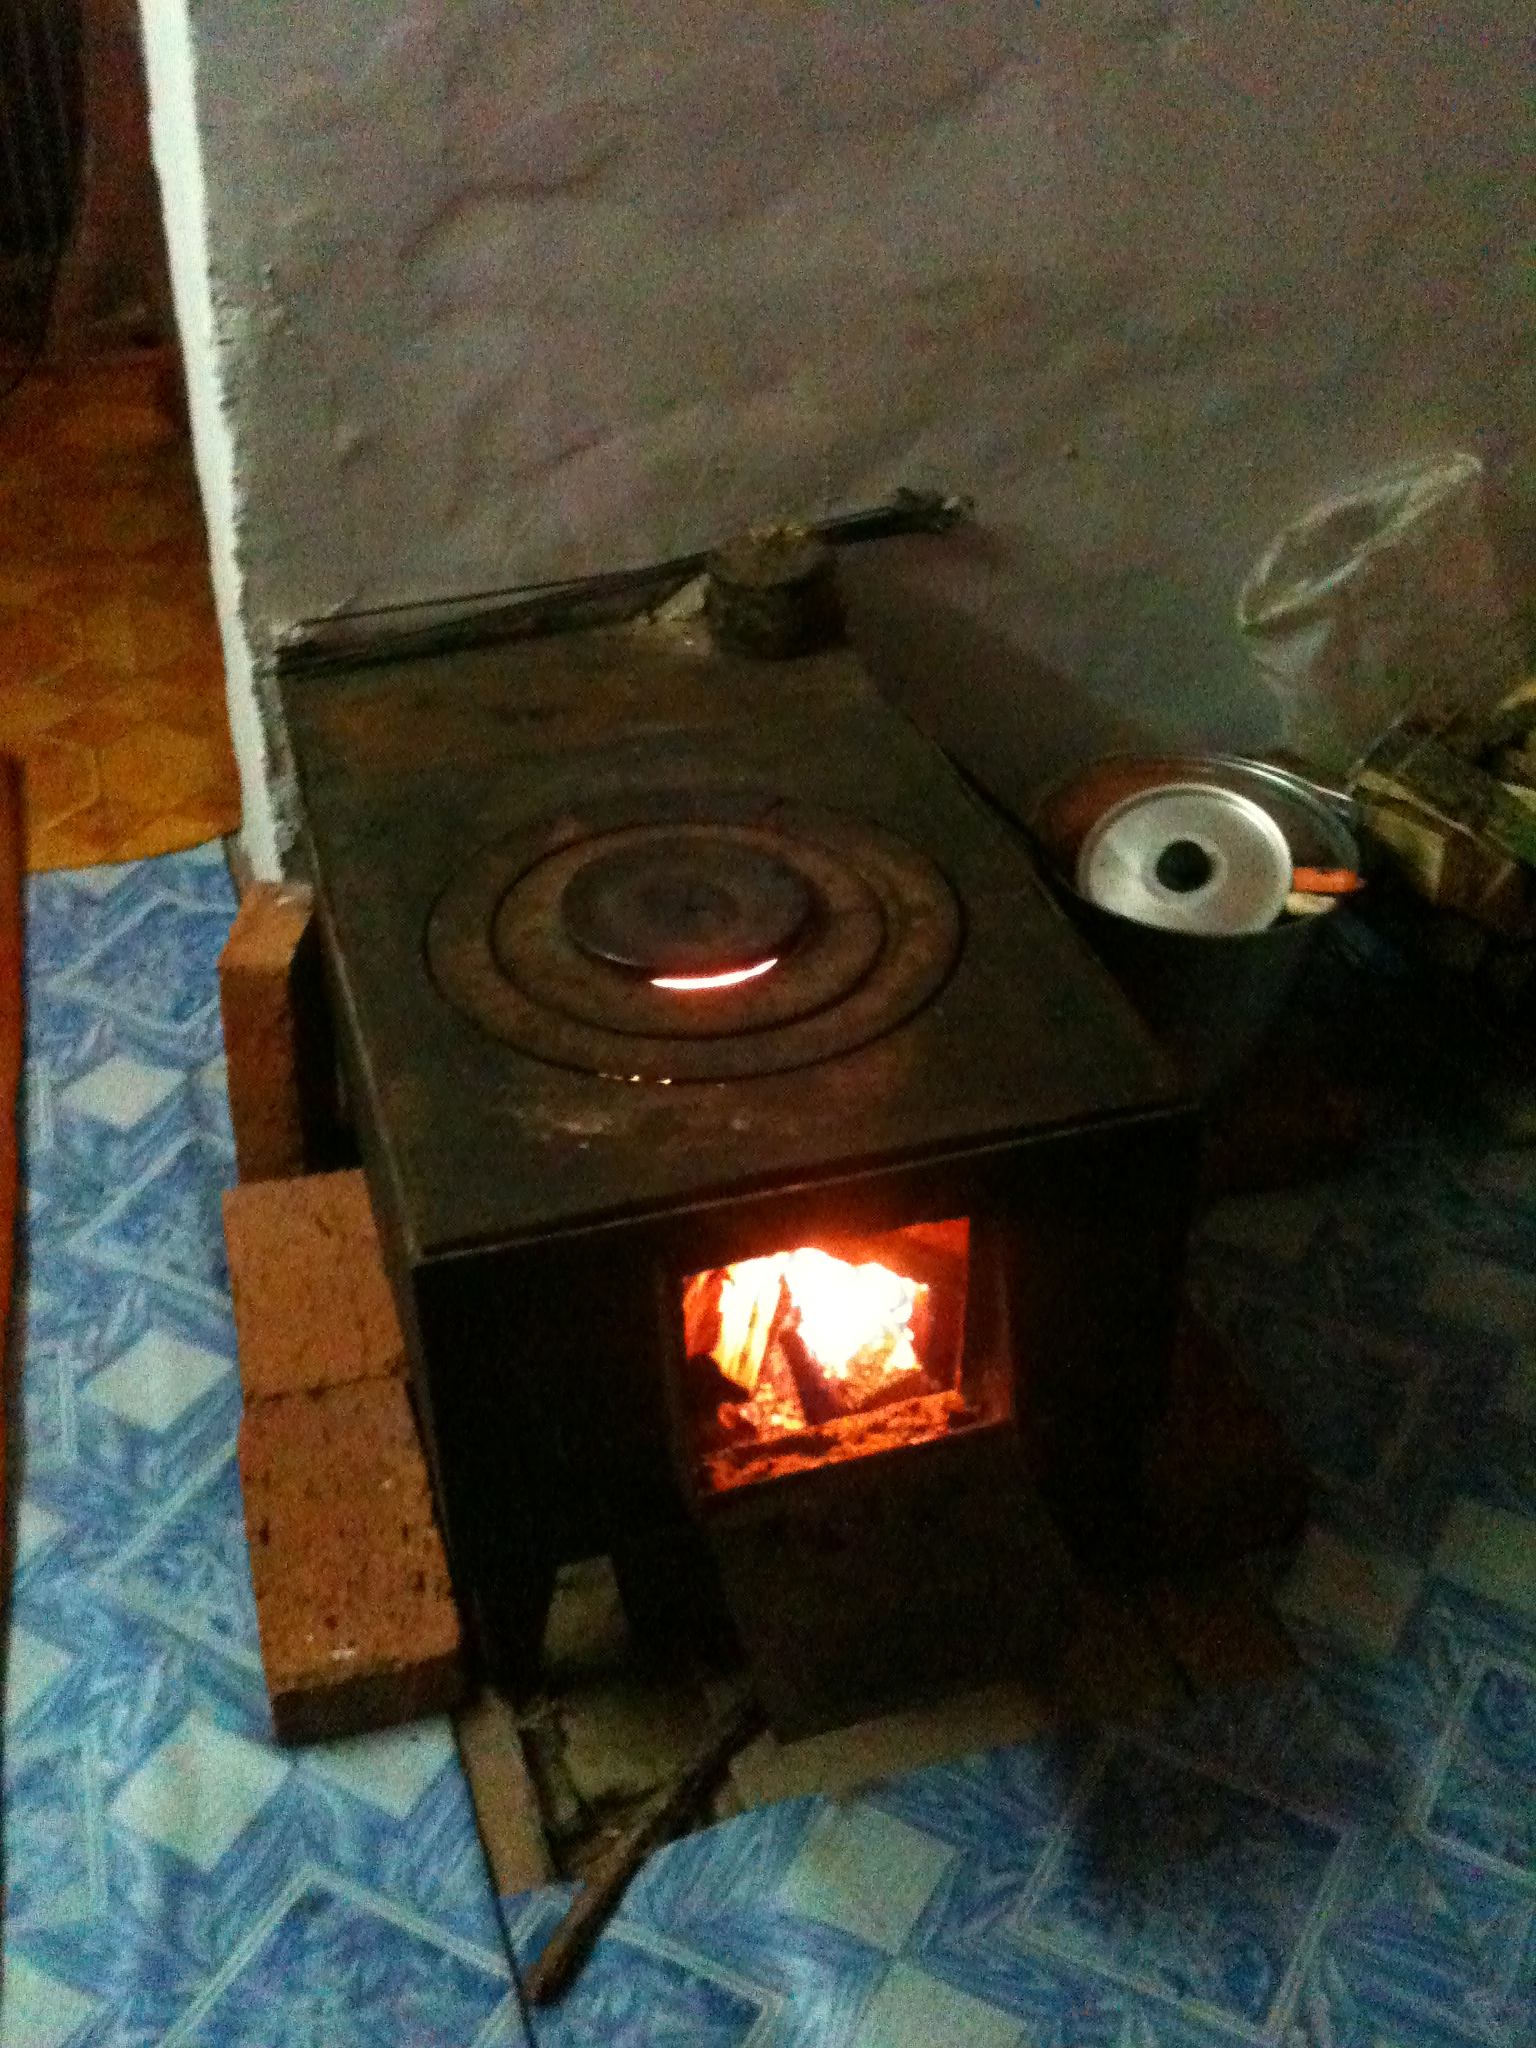 Countertop Rocket Stove : ... wood stove in Mass Heating system (rocket stoves forum at permies